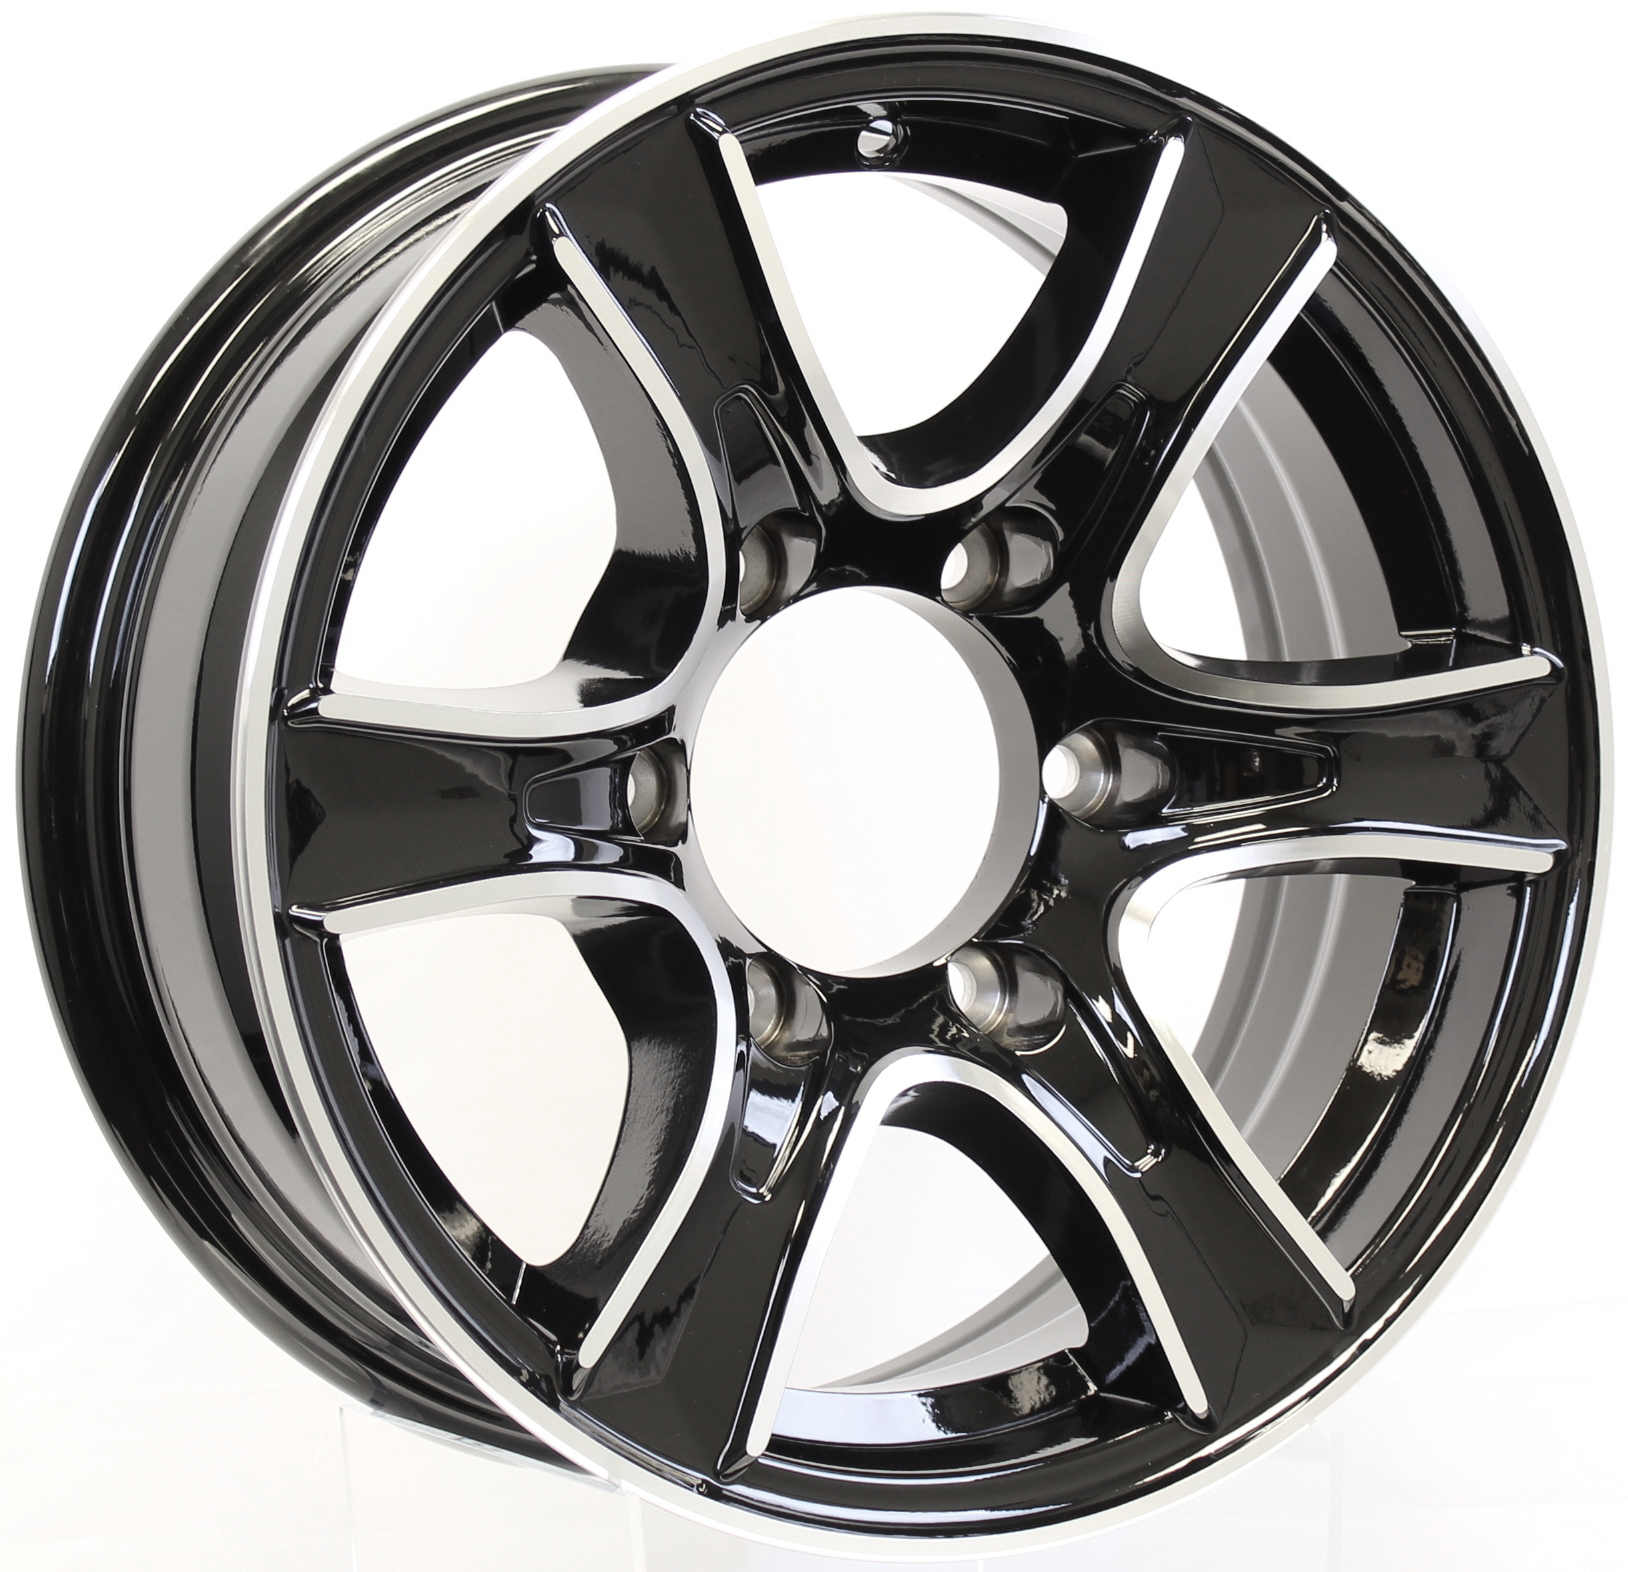 Thoroughbred- 15x6 6-Lug Black Aluminum Trailer Wheel Image